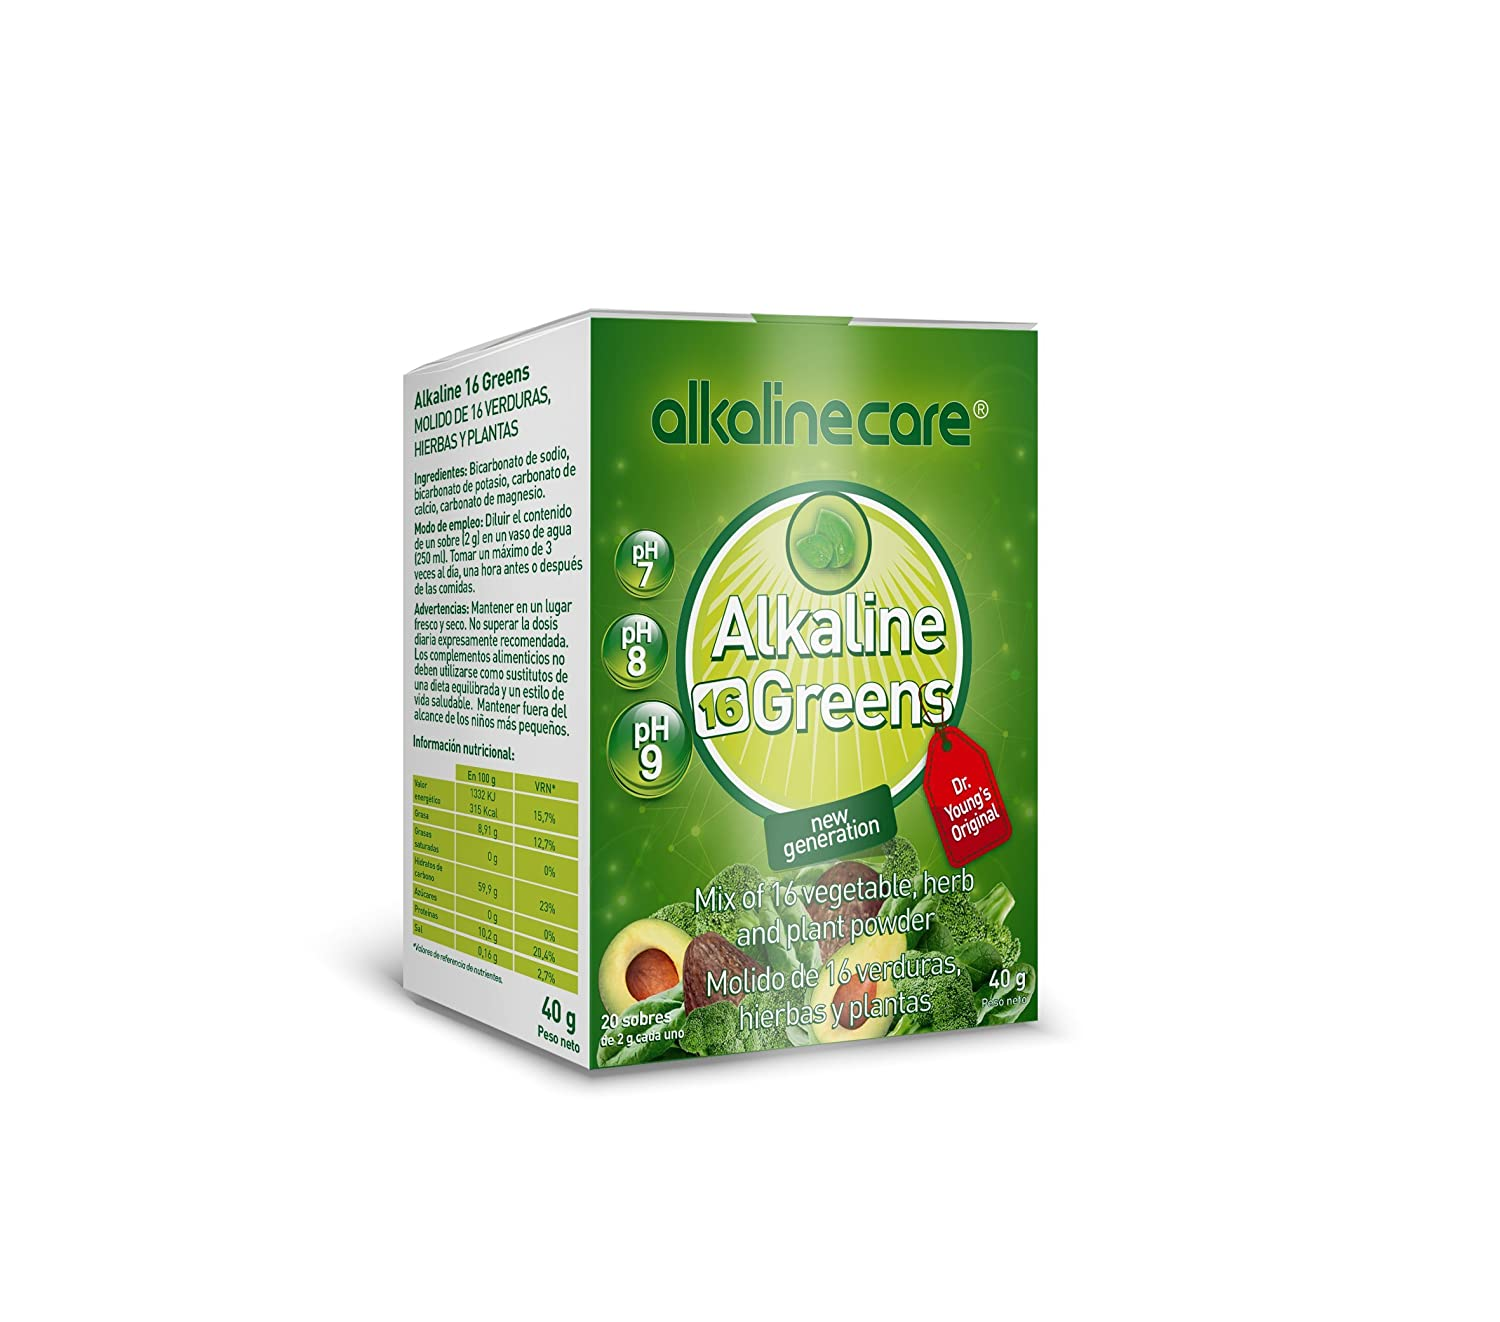 Amazon.com: Alkaline 16 Super Greens Powder, Green Juice by ALKALINE CARE: Health & Personal Care